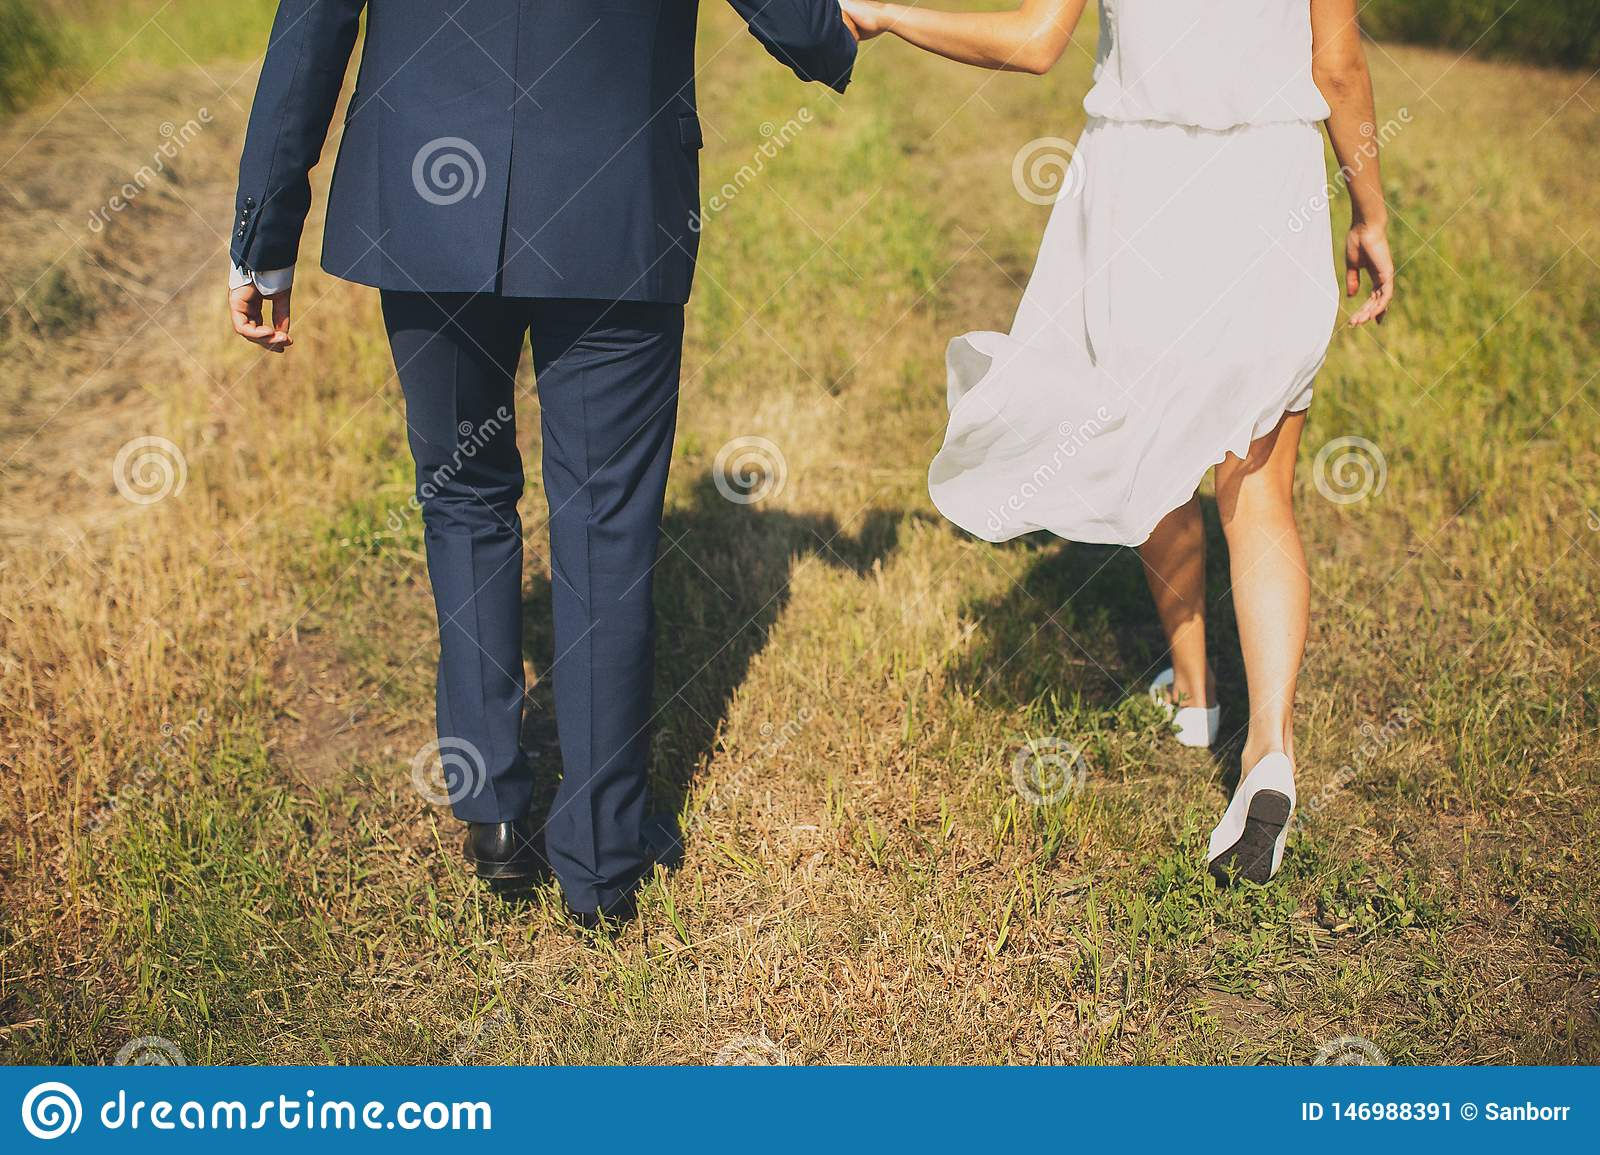 The groom in a classic suit and the bride in a short white light chiffon dress, go on the green grass, rear view. A guy and a girl